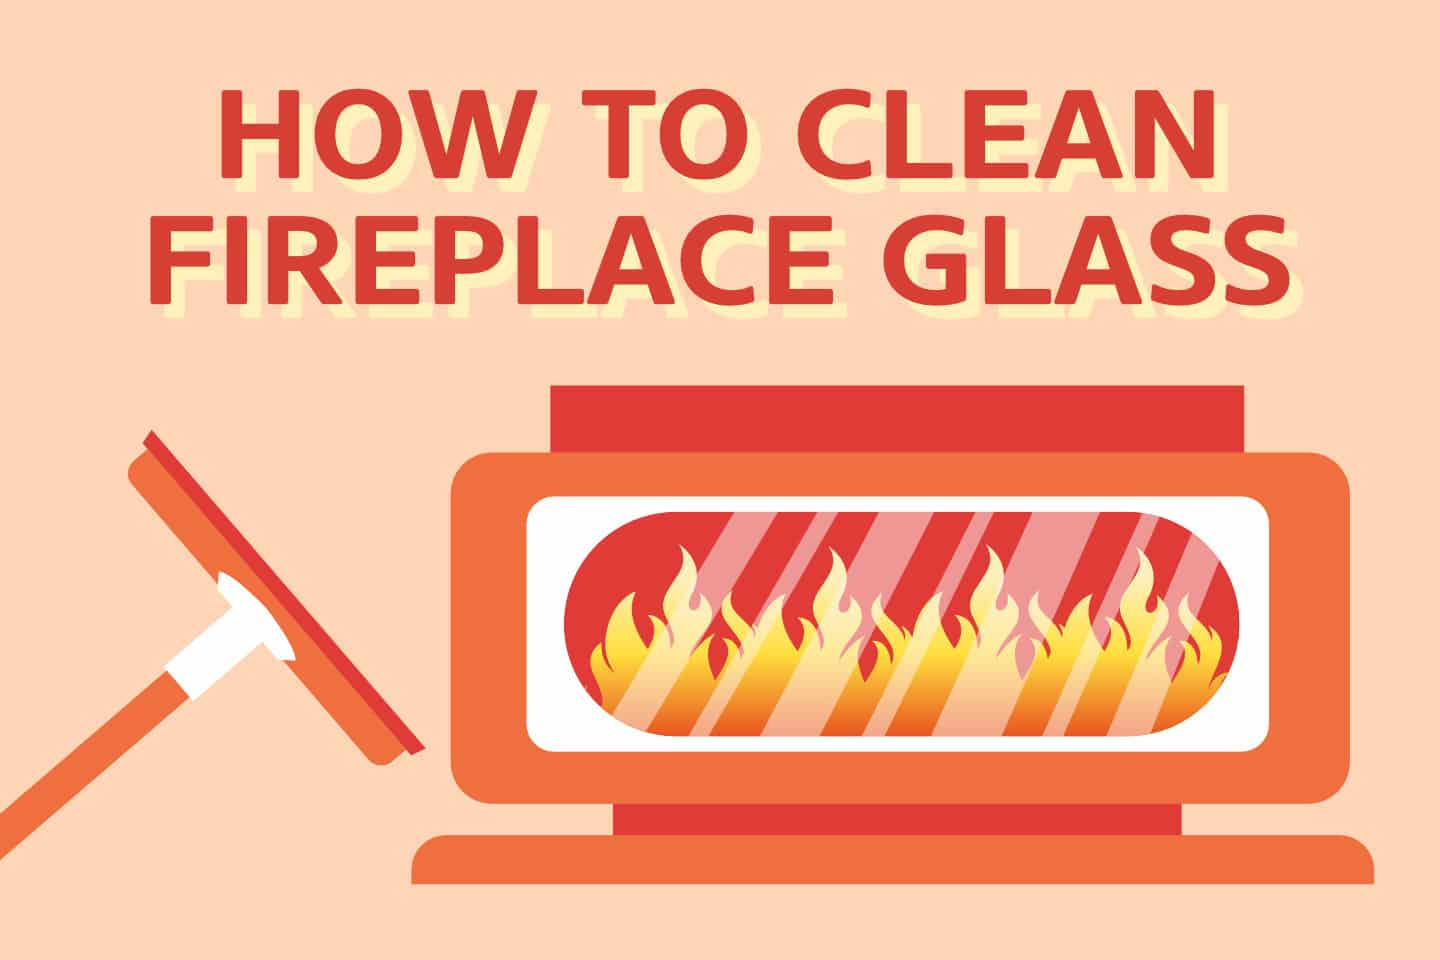 How To Clean Fireplace Glass Doors Quickly [3 SECRET Methods]